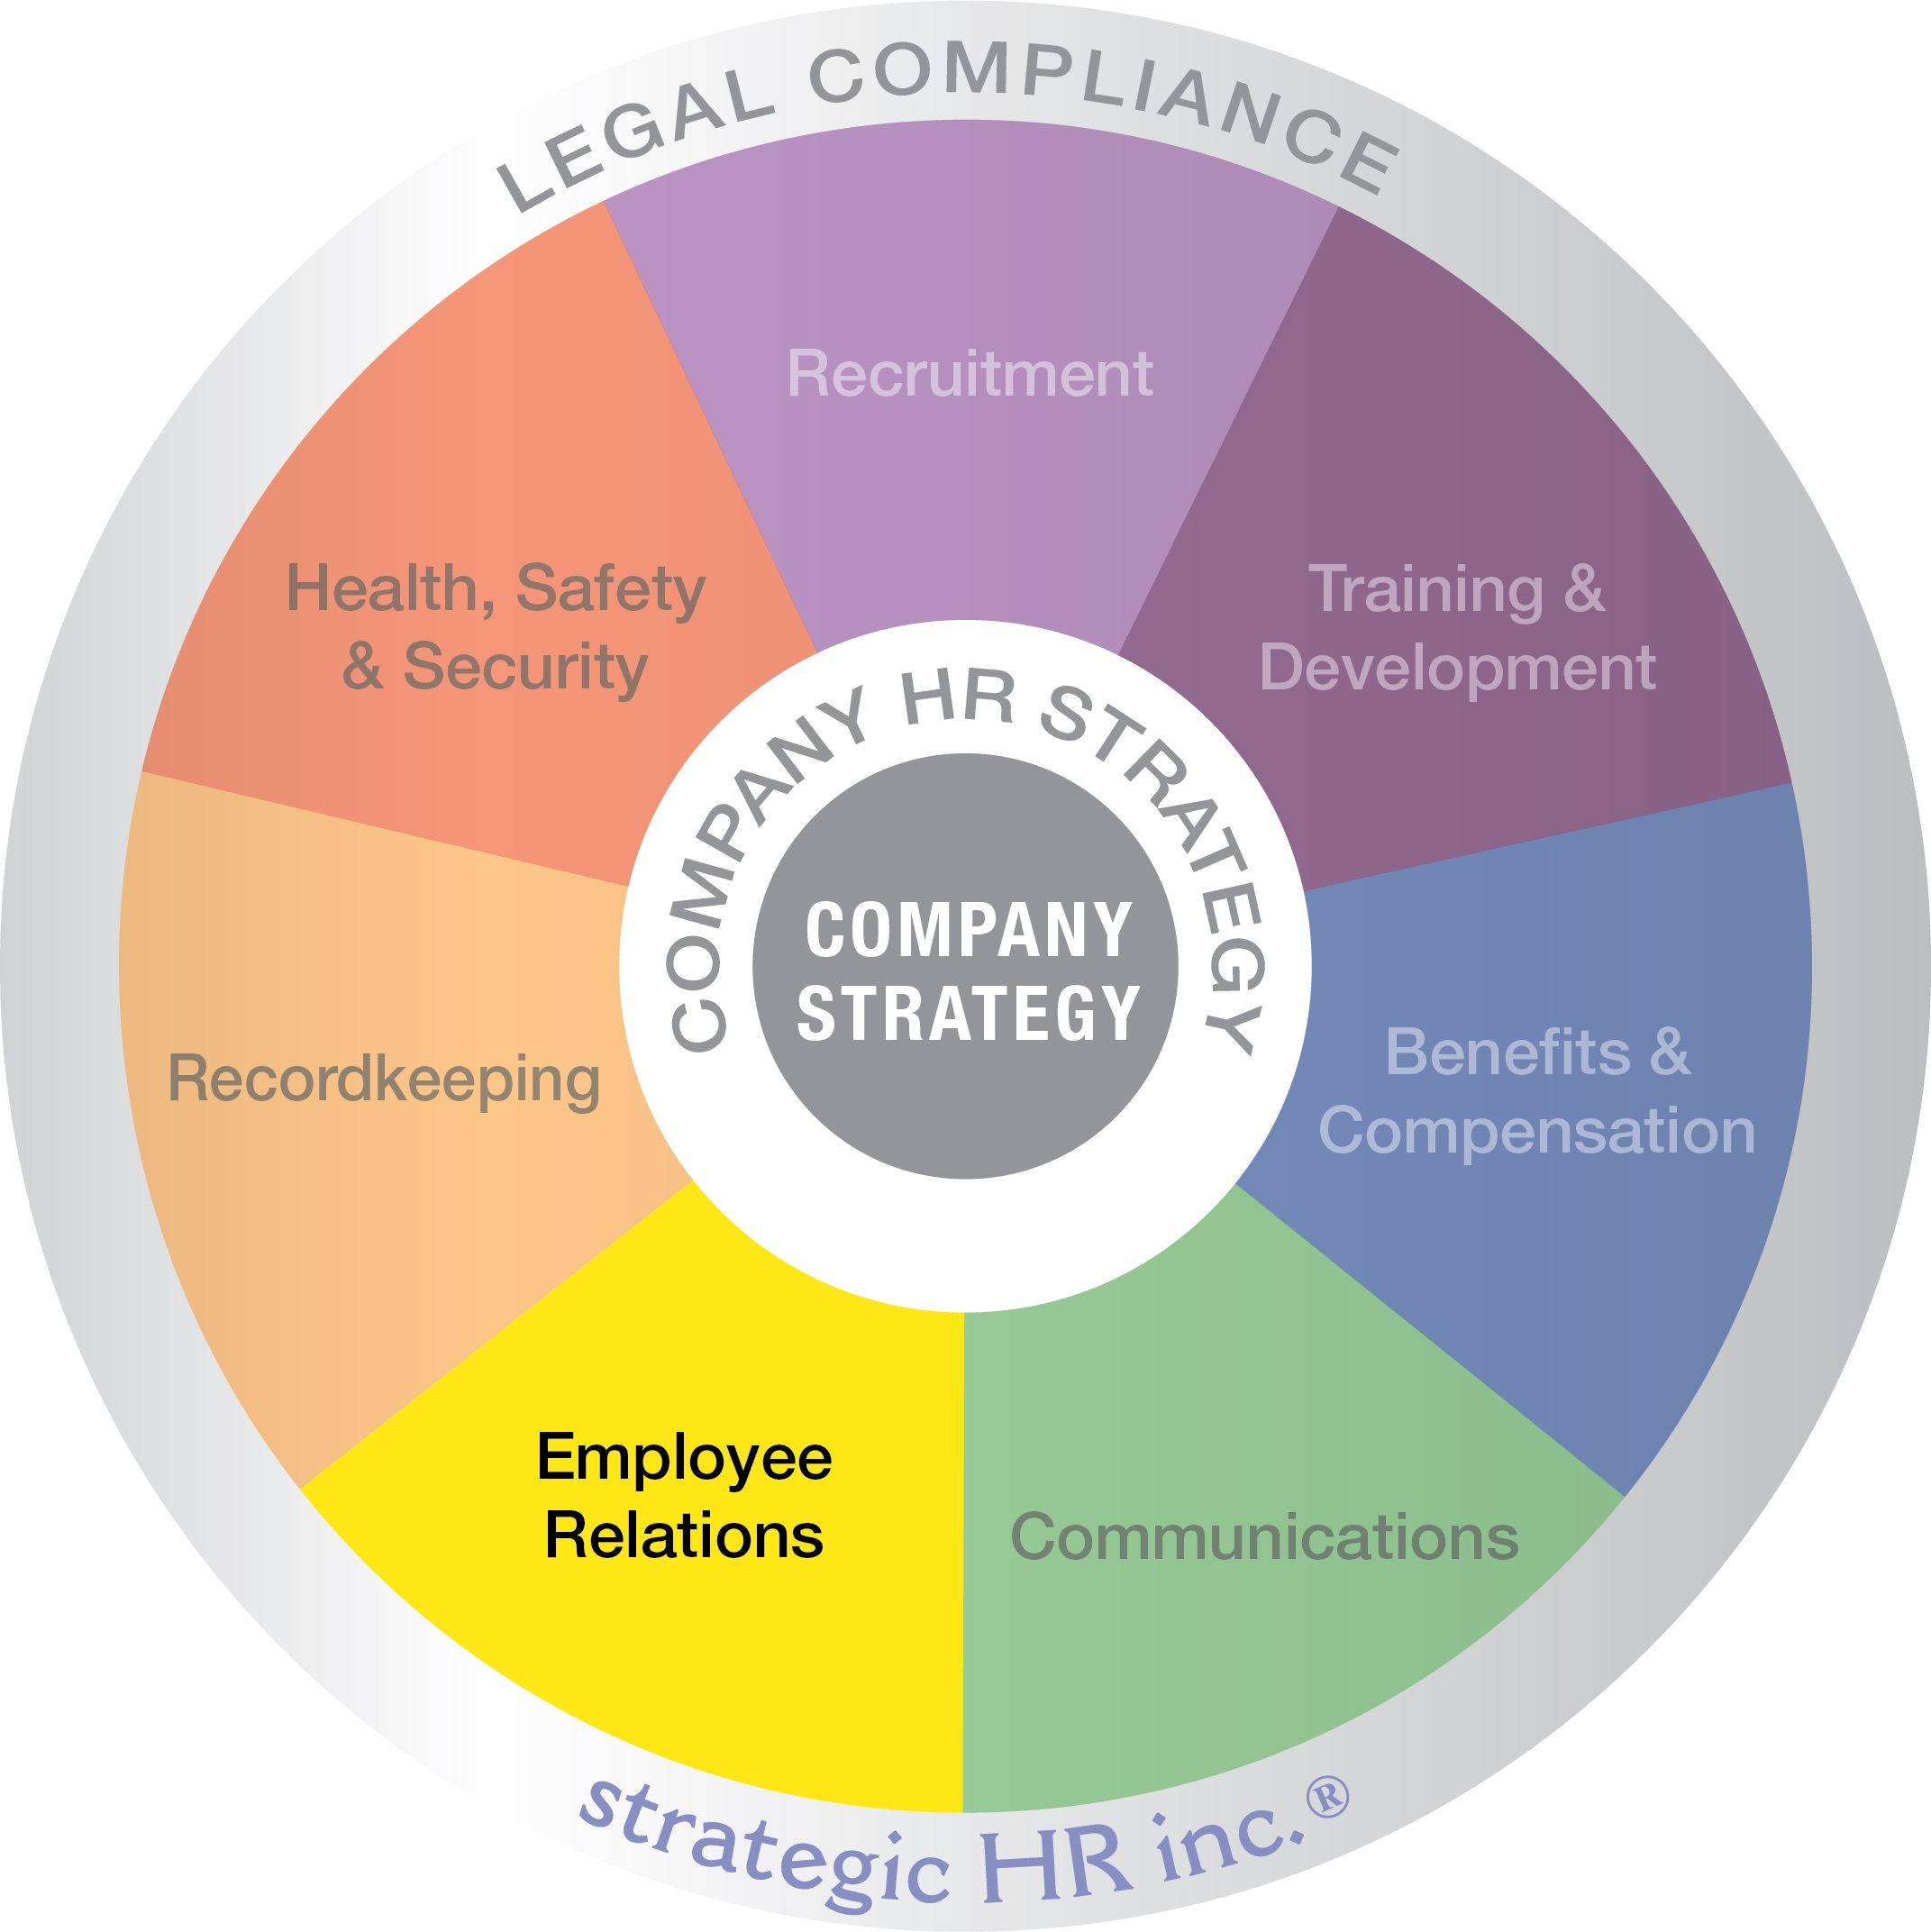 strategic HR inc.'s Wheel of HR, with emphasis on the Employee Relations wedge of the circle.